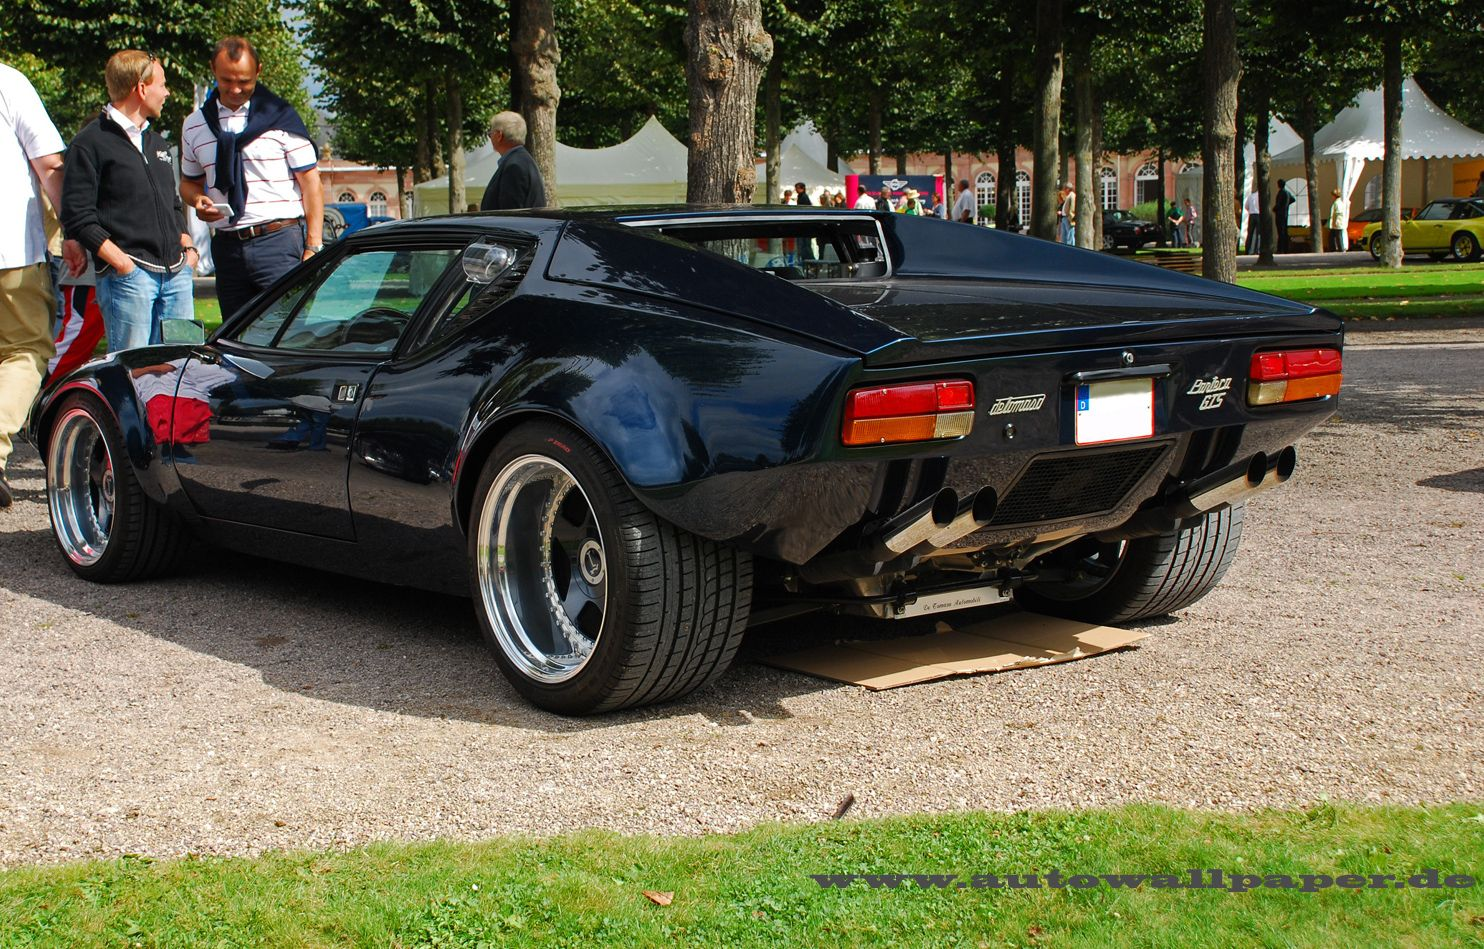 1970 De Tomaso Pantera,it had a 351 cleveland ford motor and was sold by ford in the 70's..